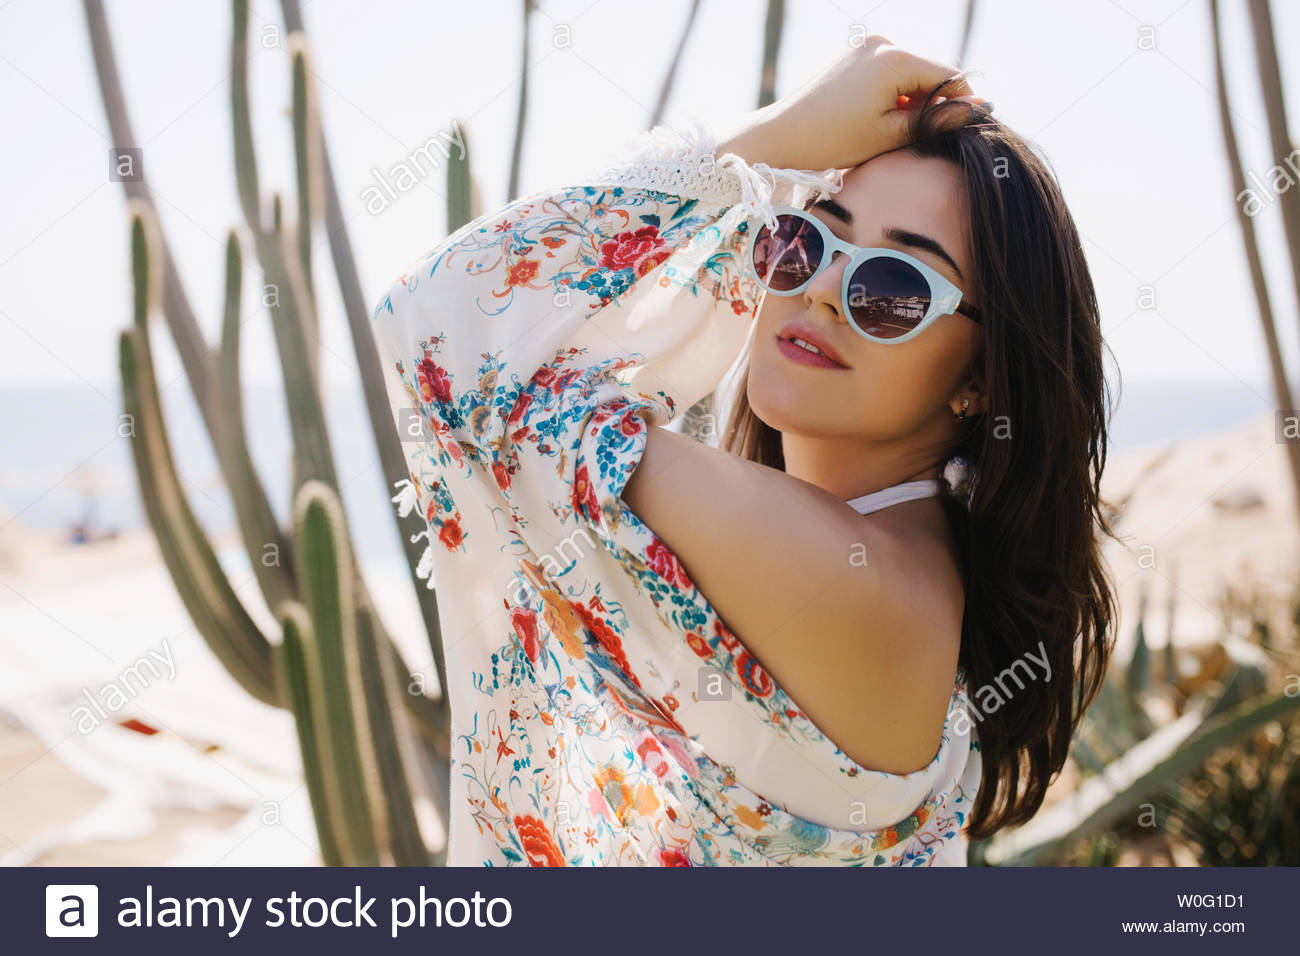 Close-up portrait of cheerful girl in white sunglasses posing with hands up on cactus background. Amazing joyful young woman in attire with floral print having fun outside in summer vacation - Stock Image